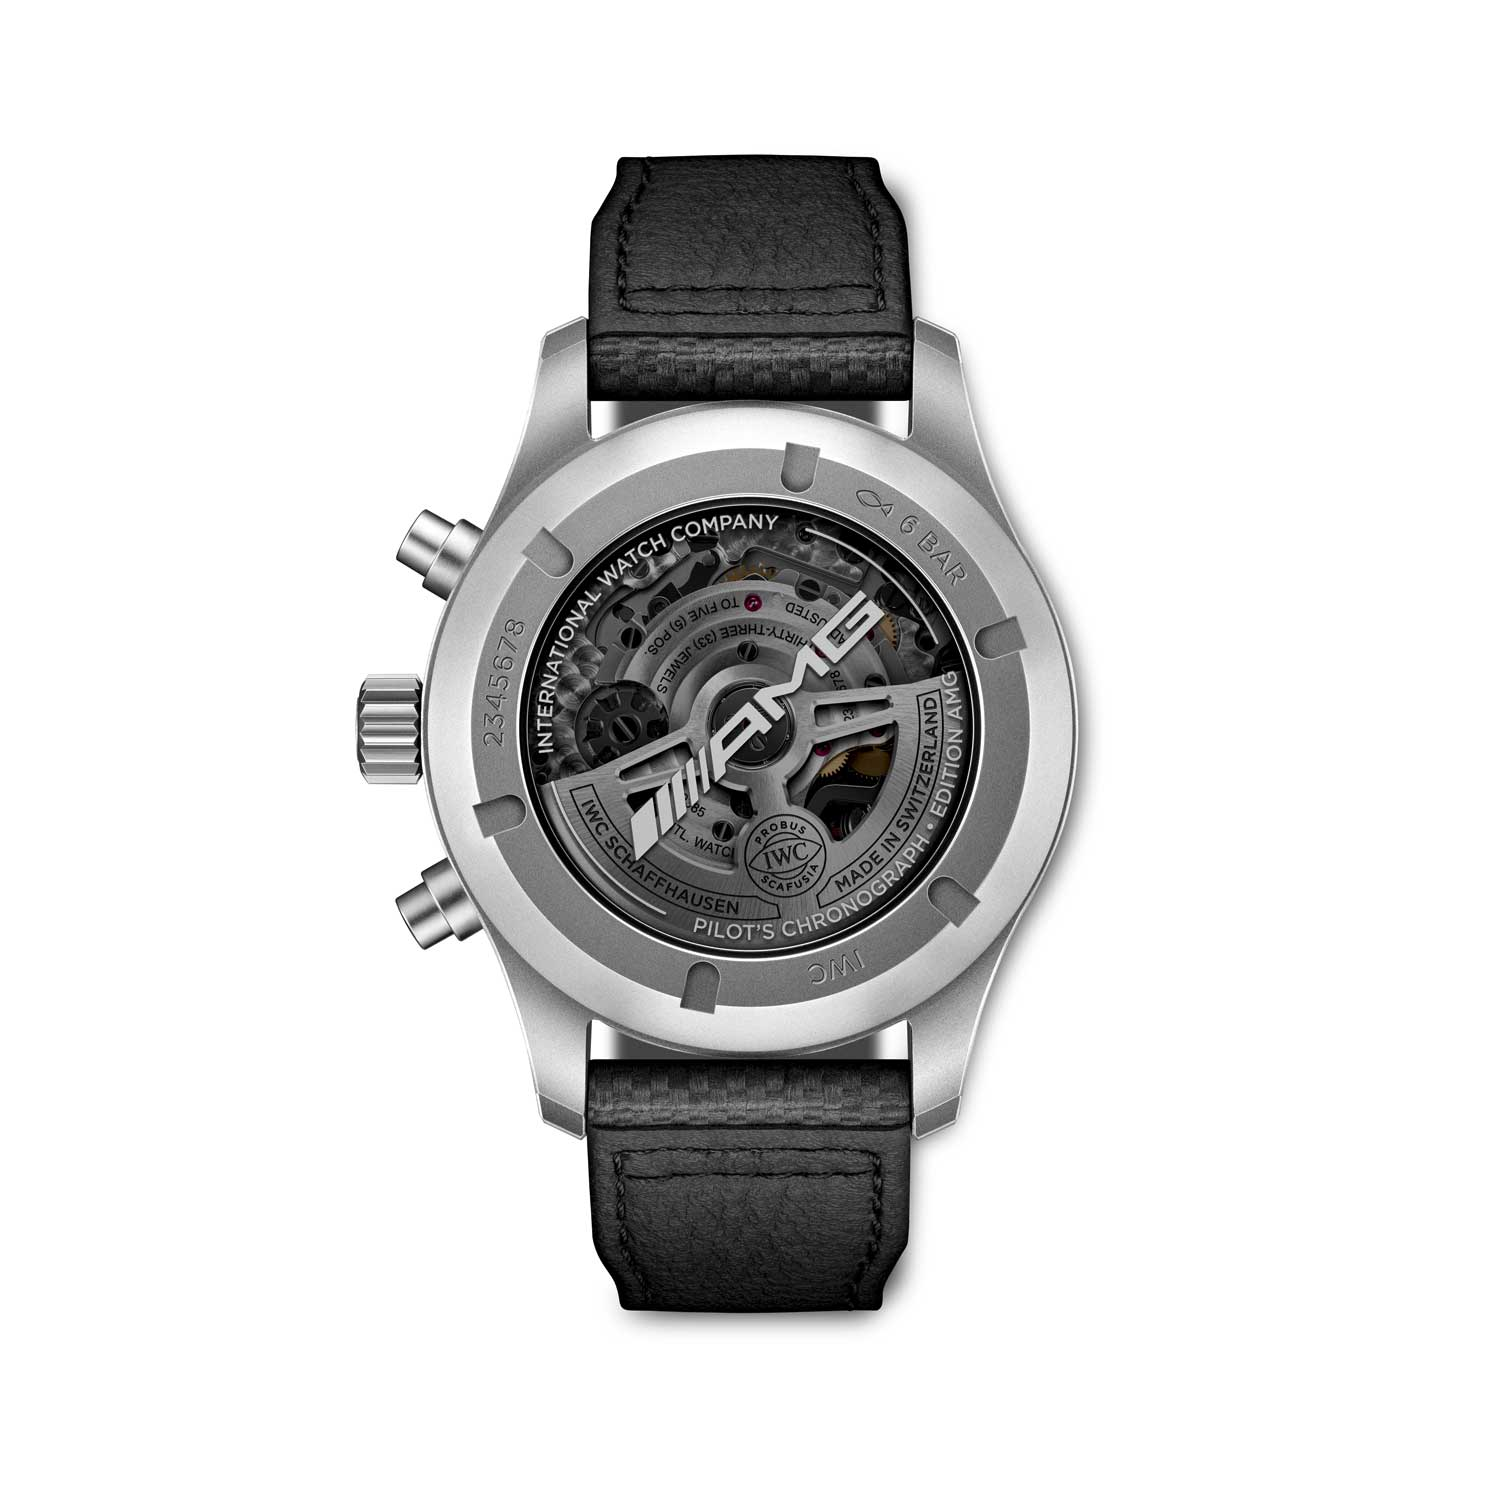 This is the first time IWC has used Caliber 69385 in a 43 mm case